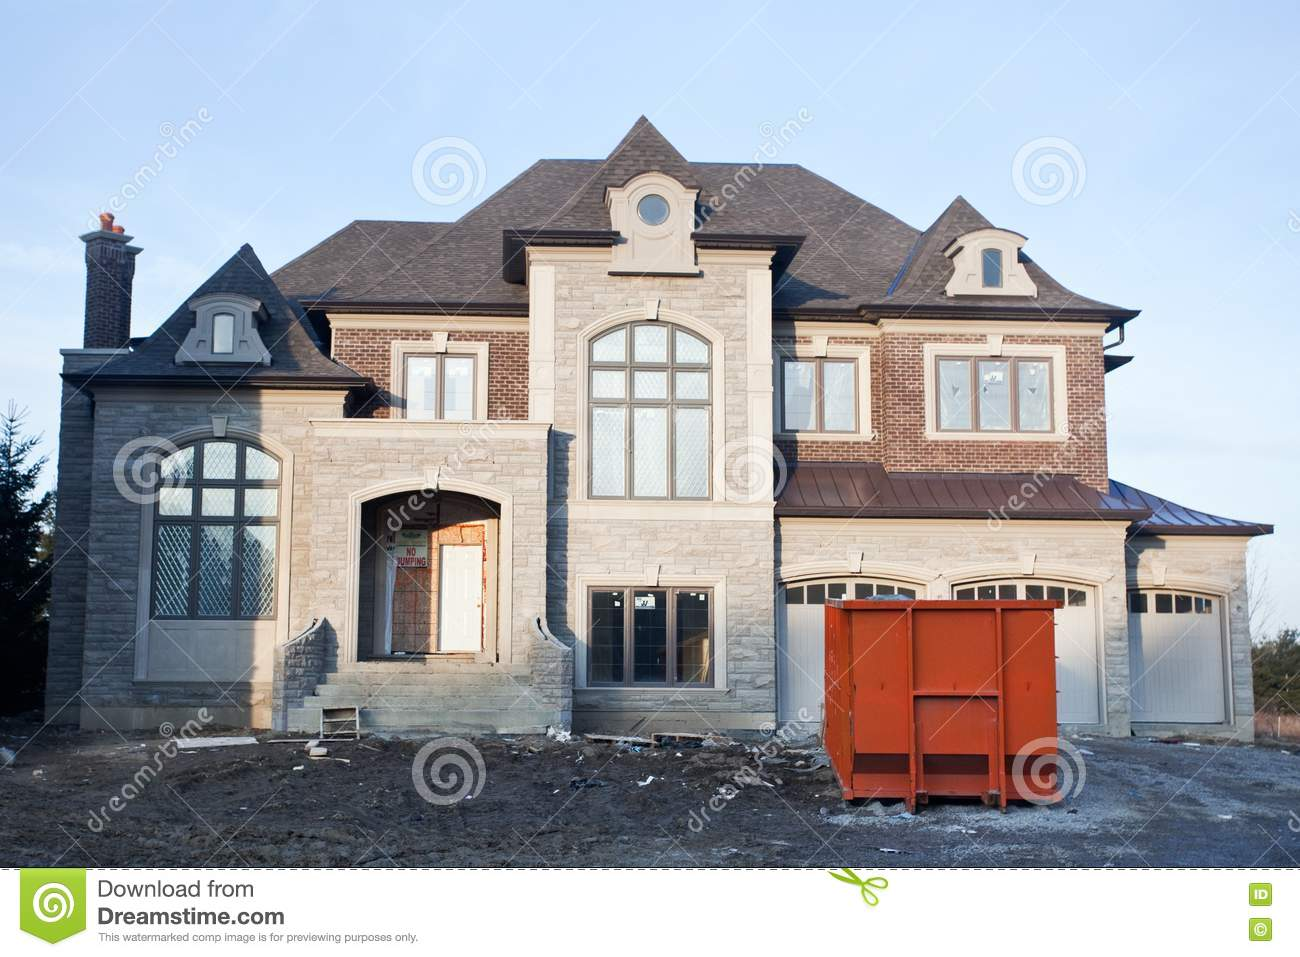 Luxury homes royalty free stock photo image 23434805 for Free luxury home images